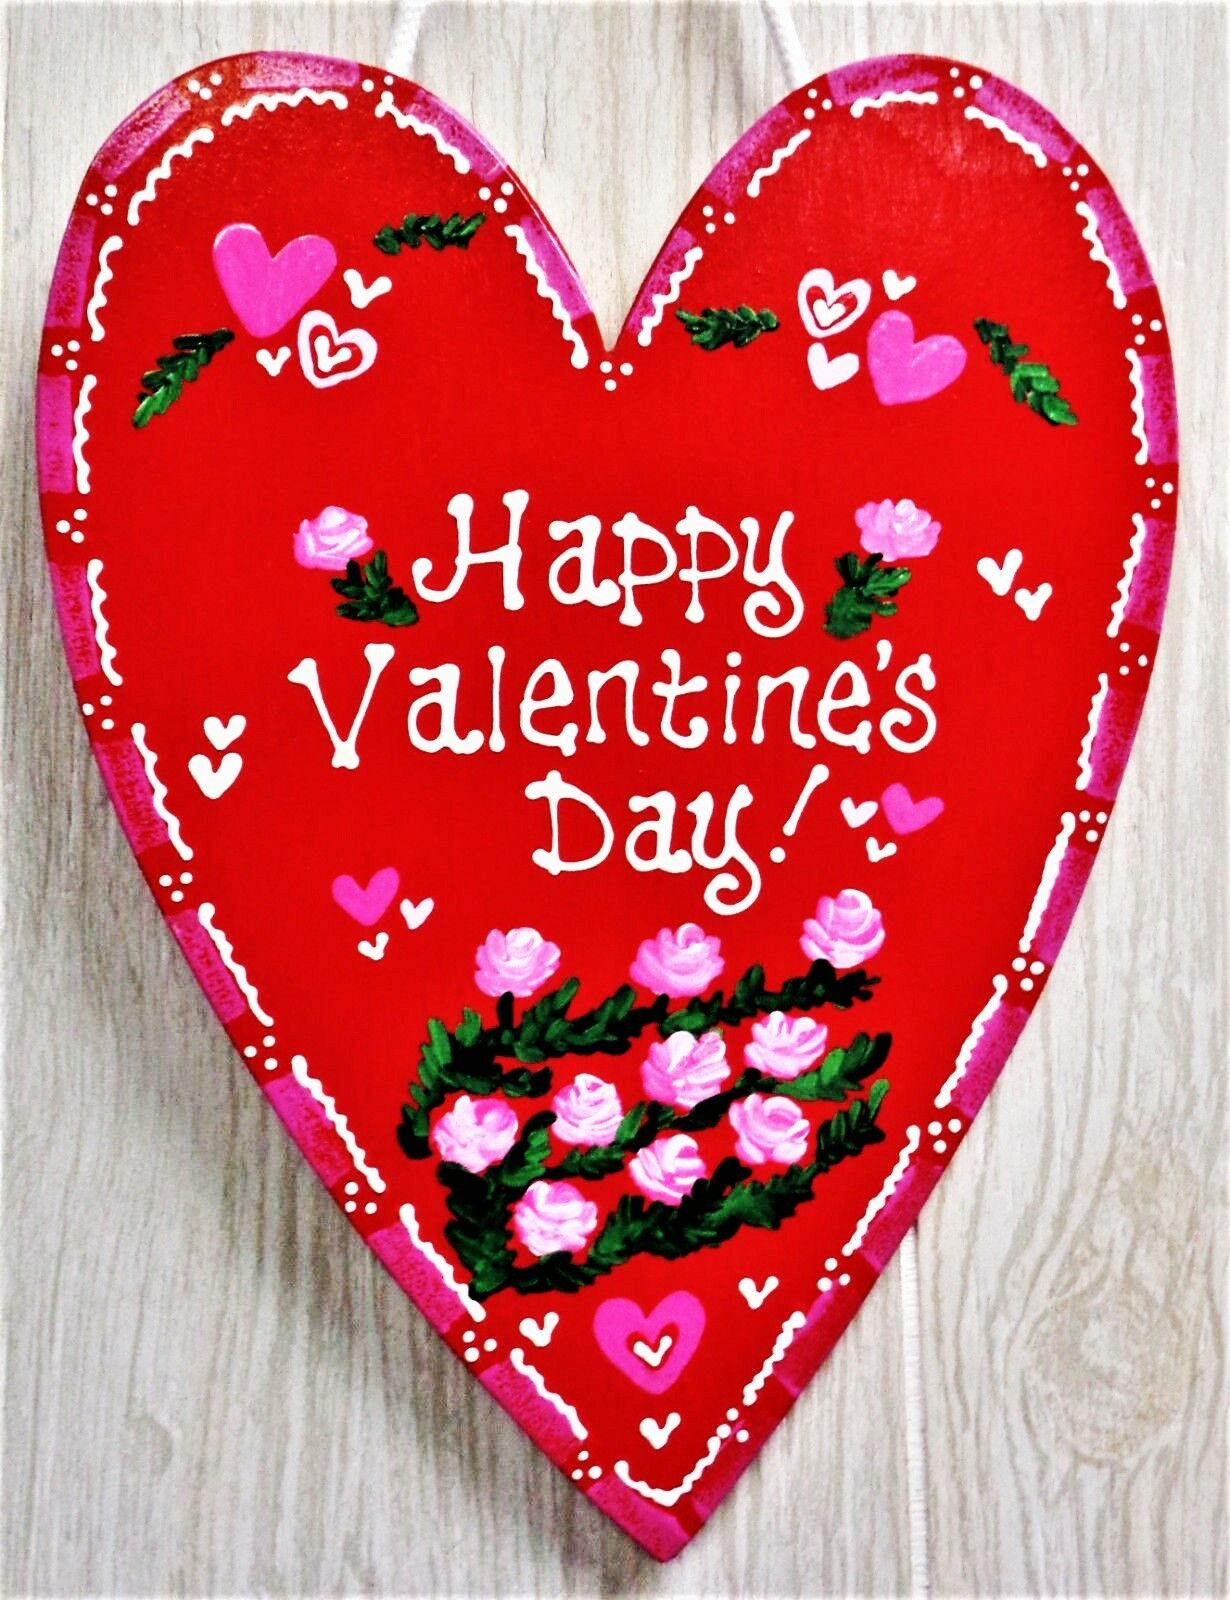 ALAZA Happy Valentines Day Bling Light Red Hearts Wood Sign Wall Art Hanging Rustic Plaque Board Decor for Home Front Door Farmhouse Porch Garden Yard Sign 6x11